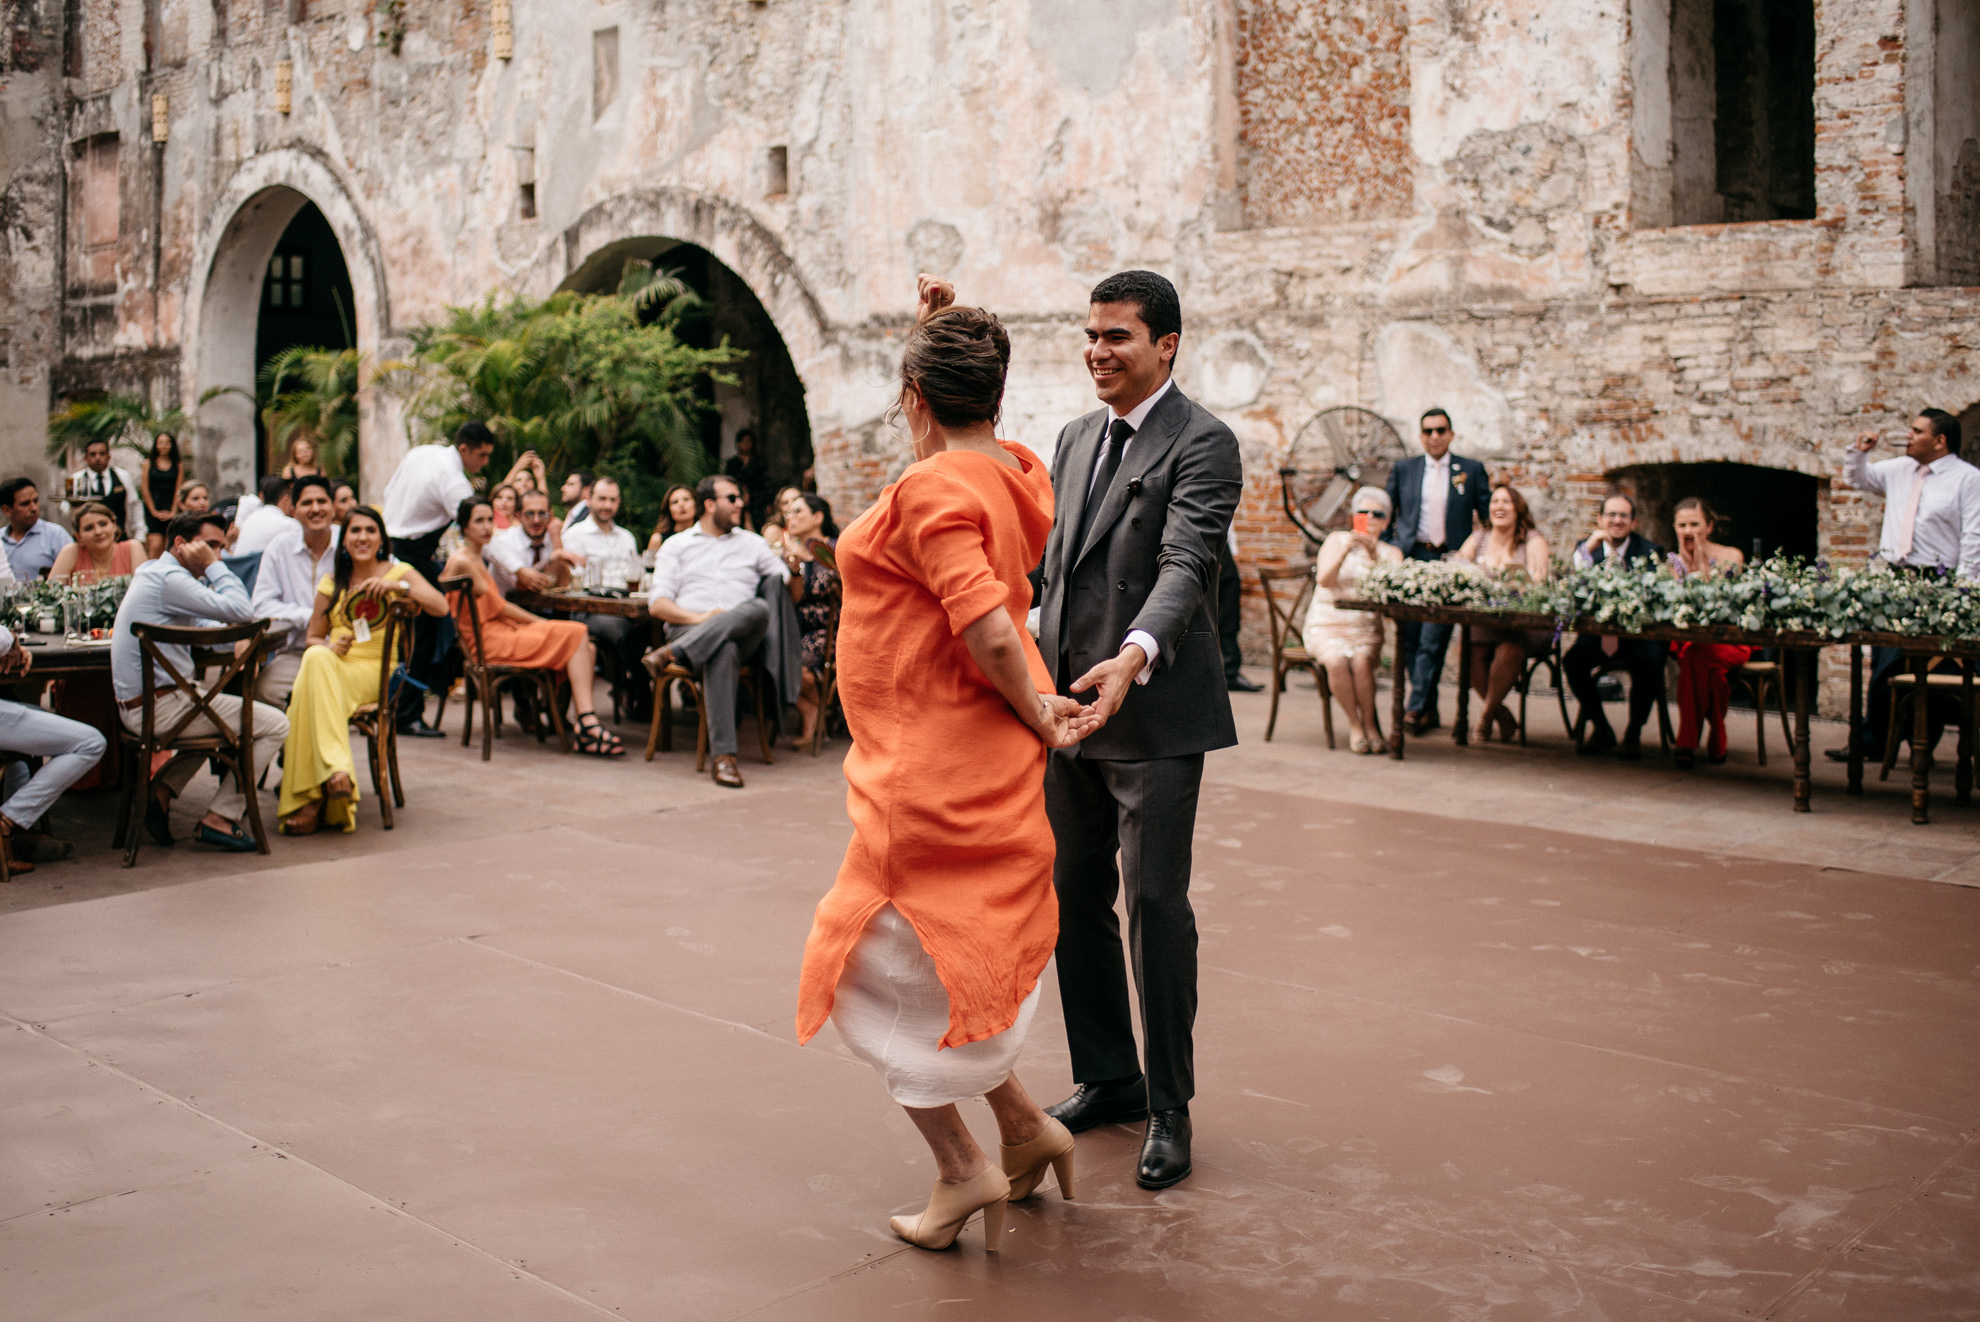 073 - wedding hacienda san carlos.jpg